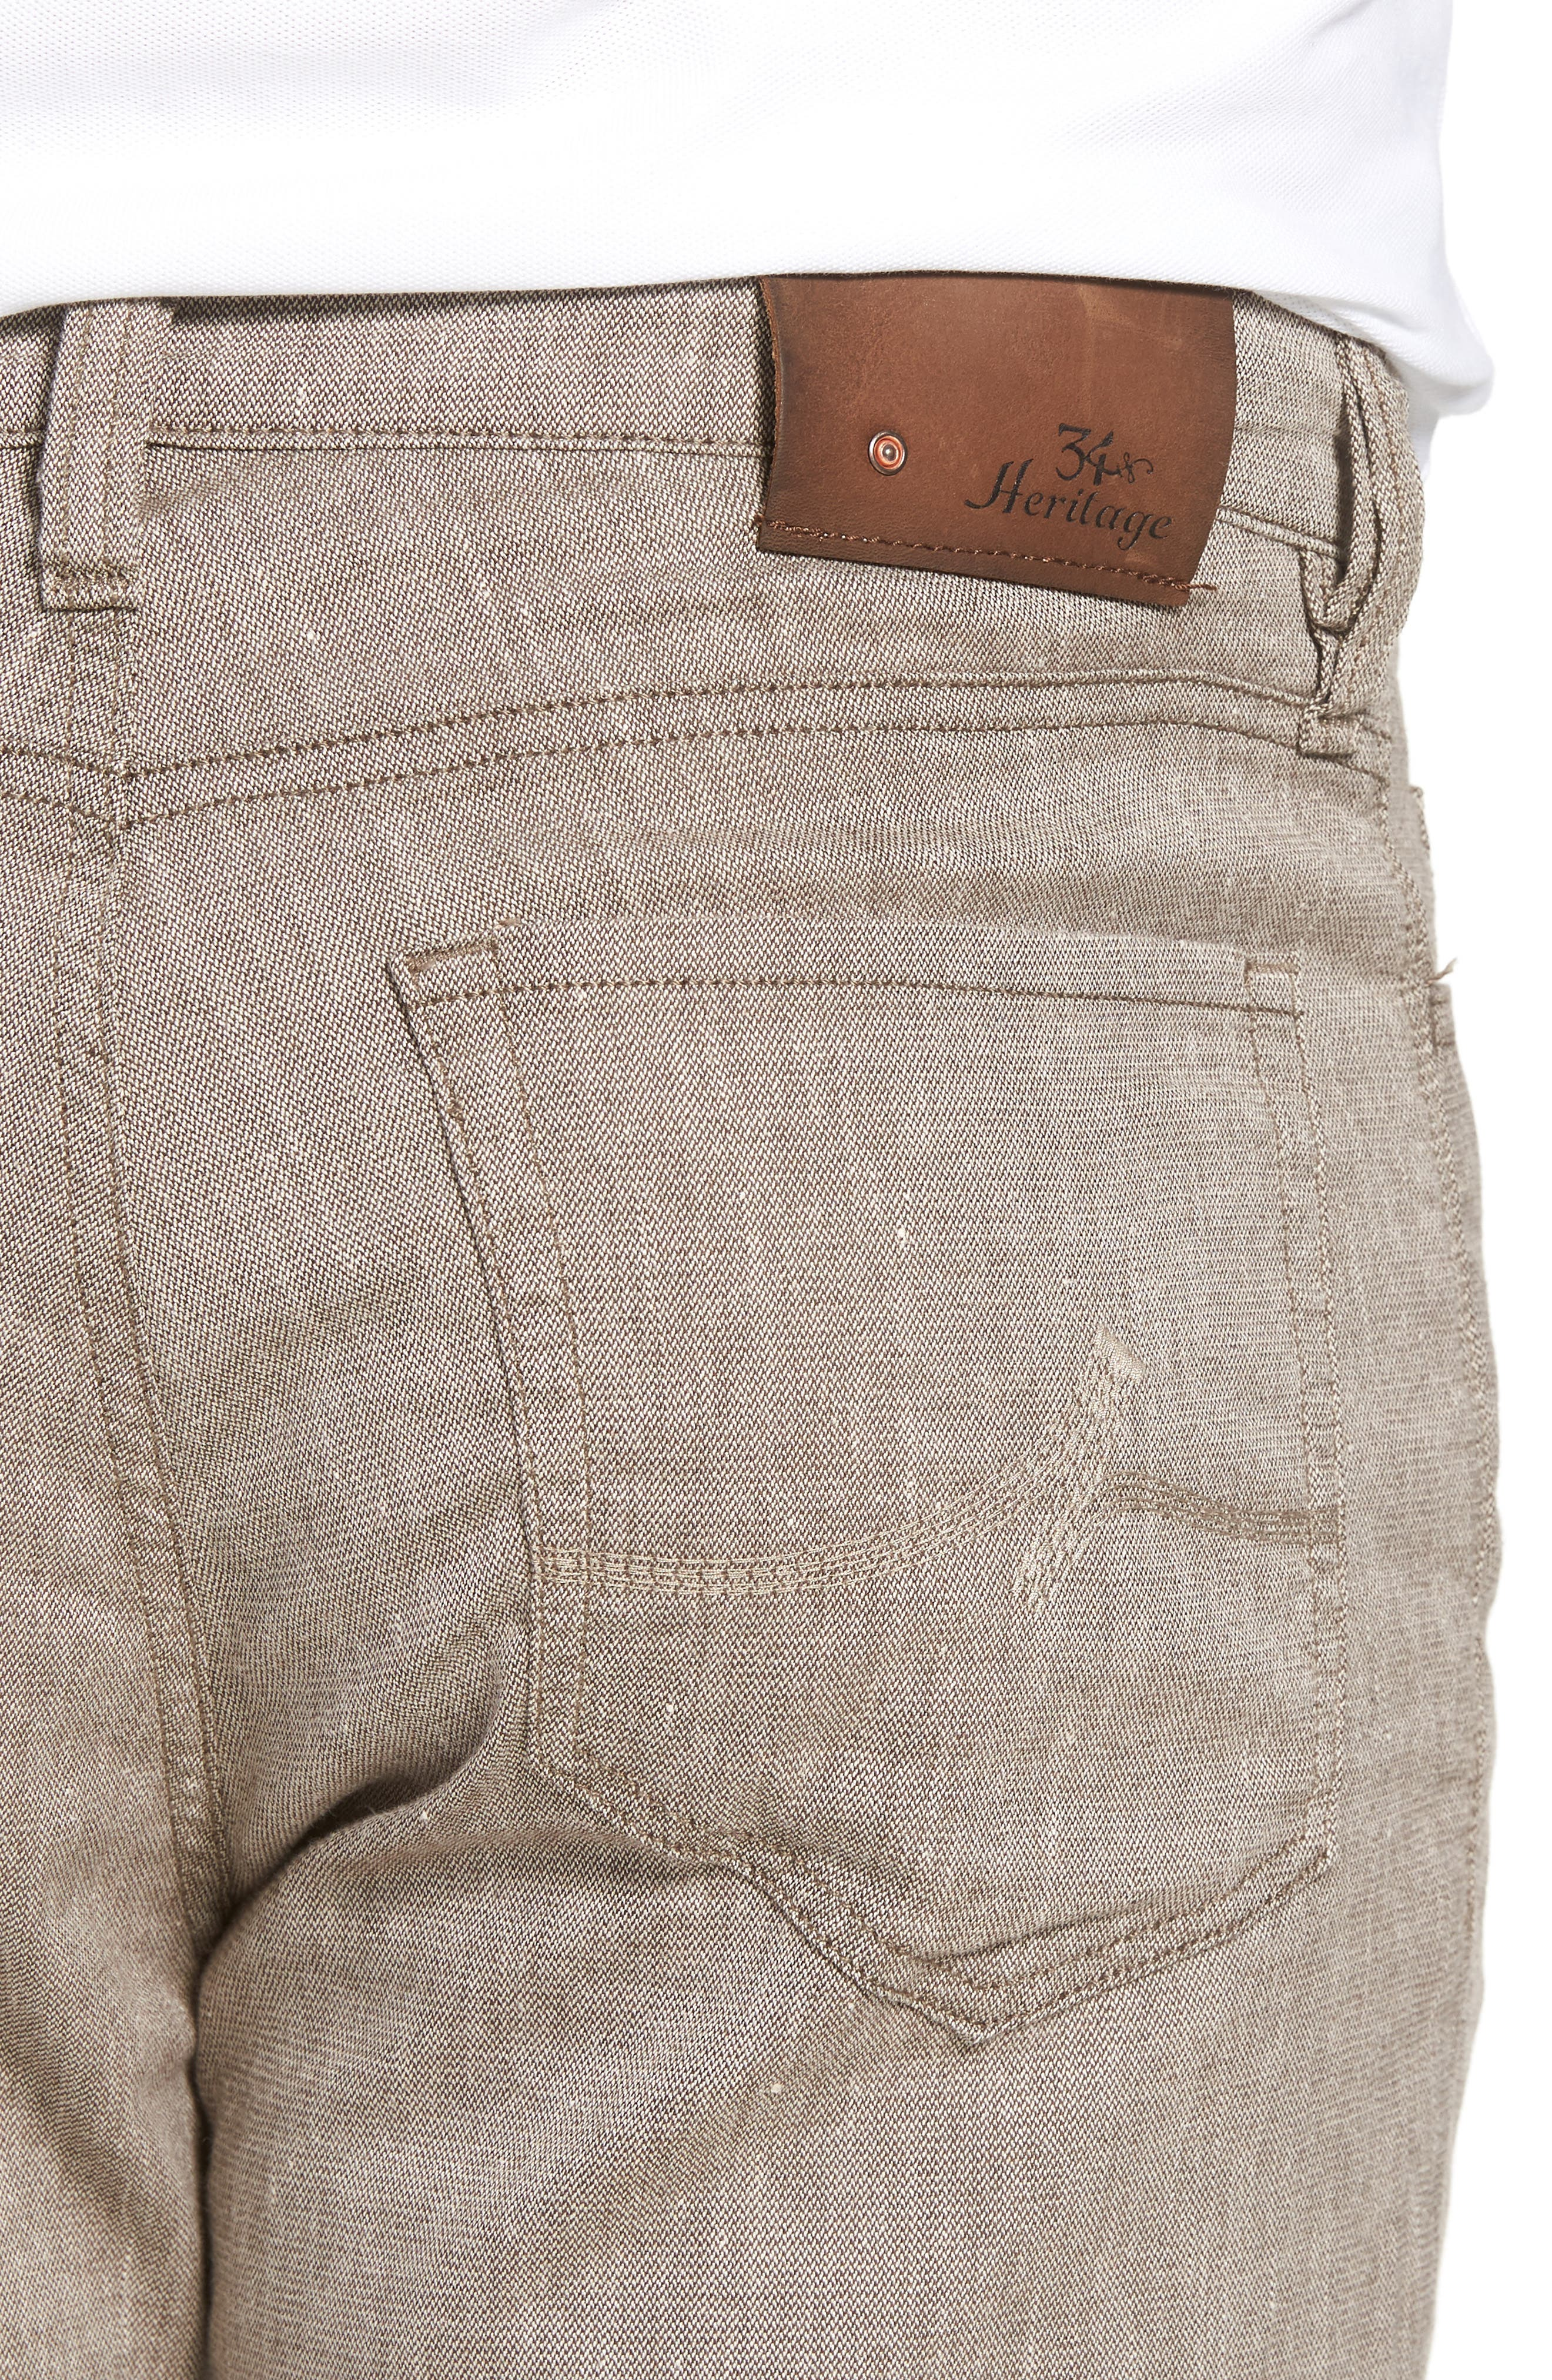 Charisma Relaxed Fit Pants,                             Alternate thumbnail 4, color,                             Latte Textured